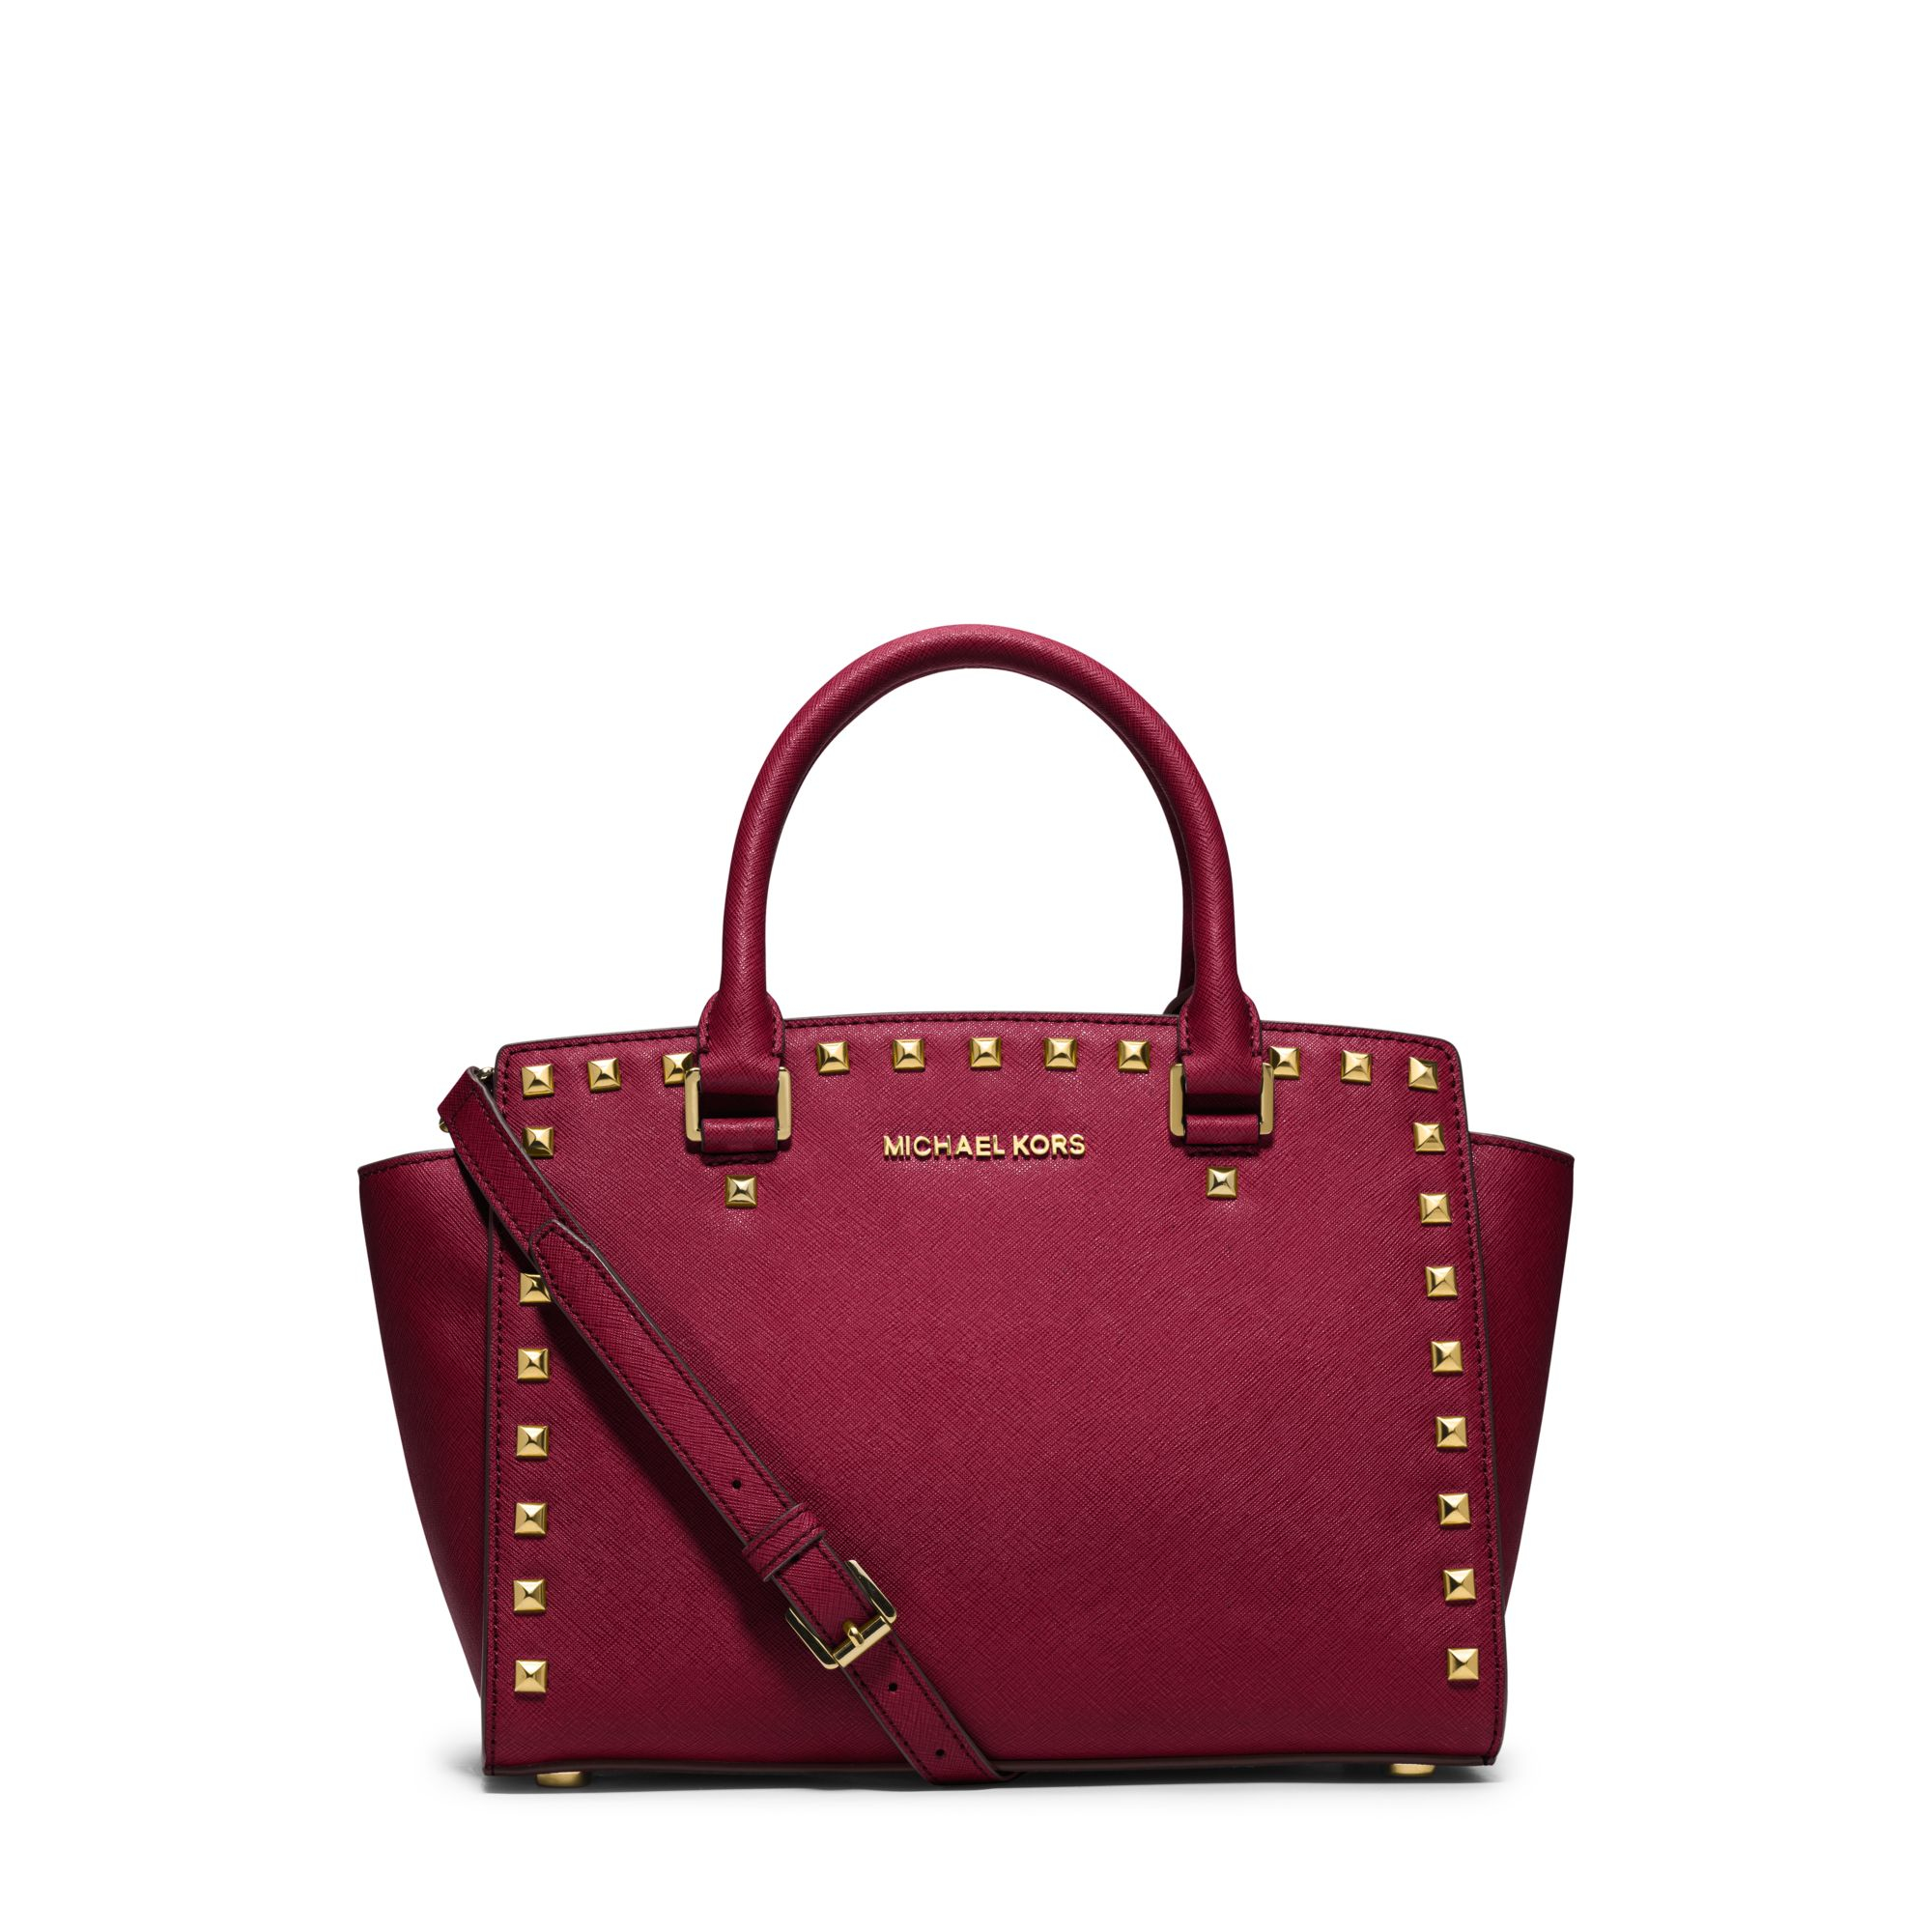 michael kors selma studded saffiano leather satchel in red lyst. Black Bedroom Furniture Sets. Home Design Ideas